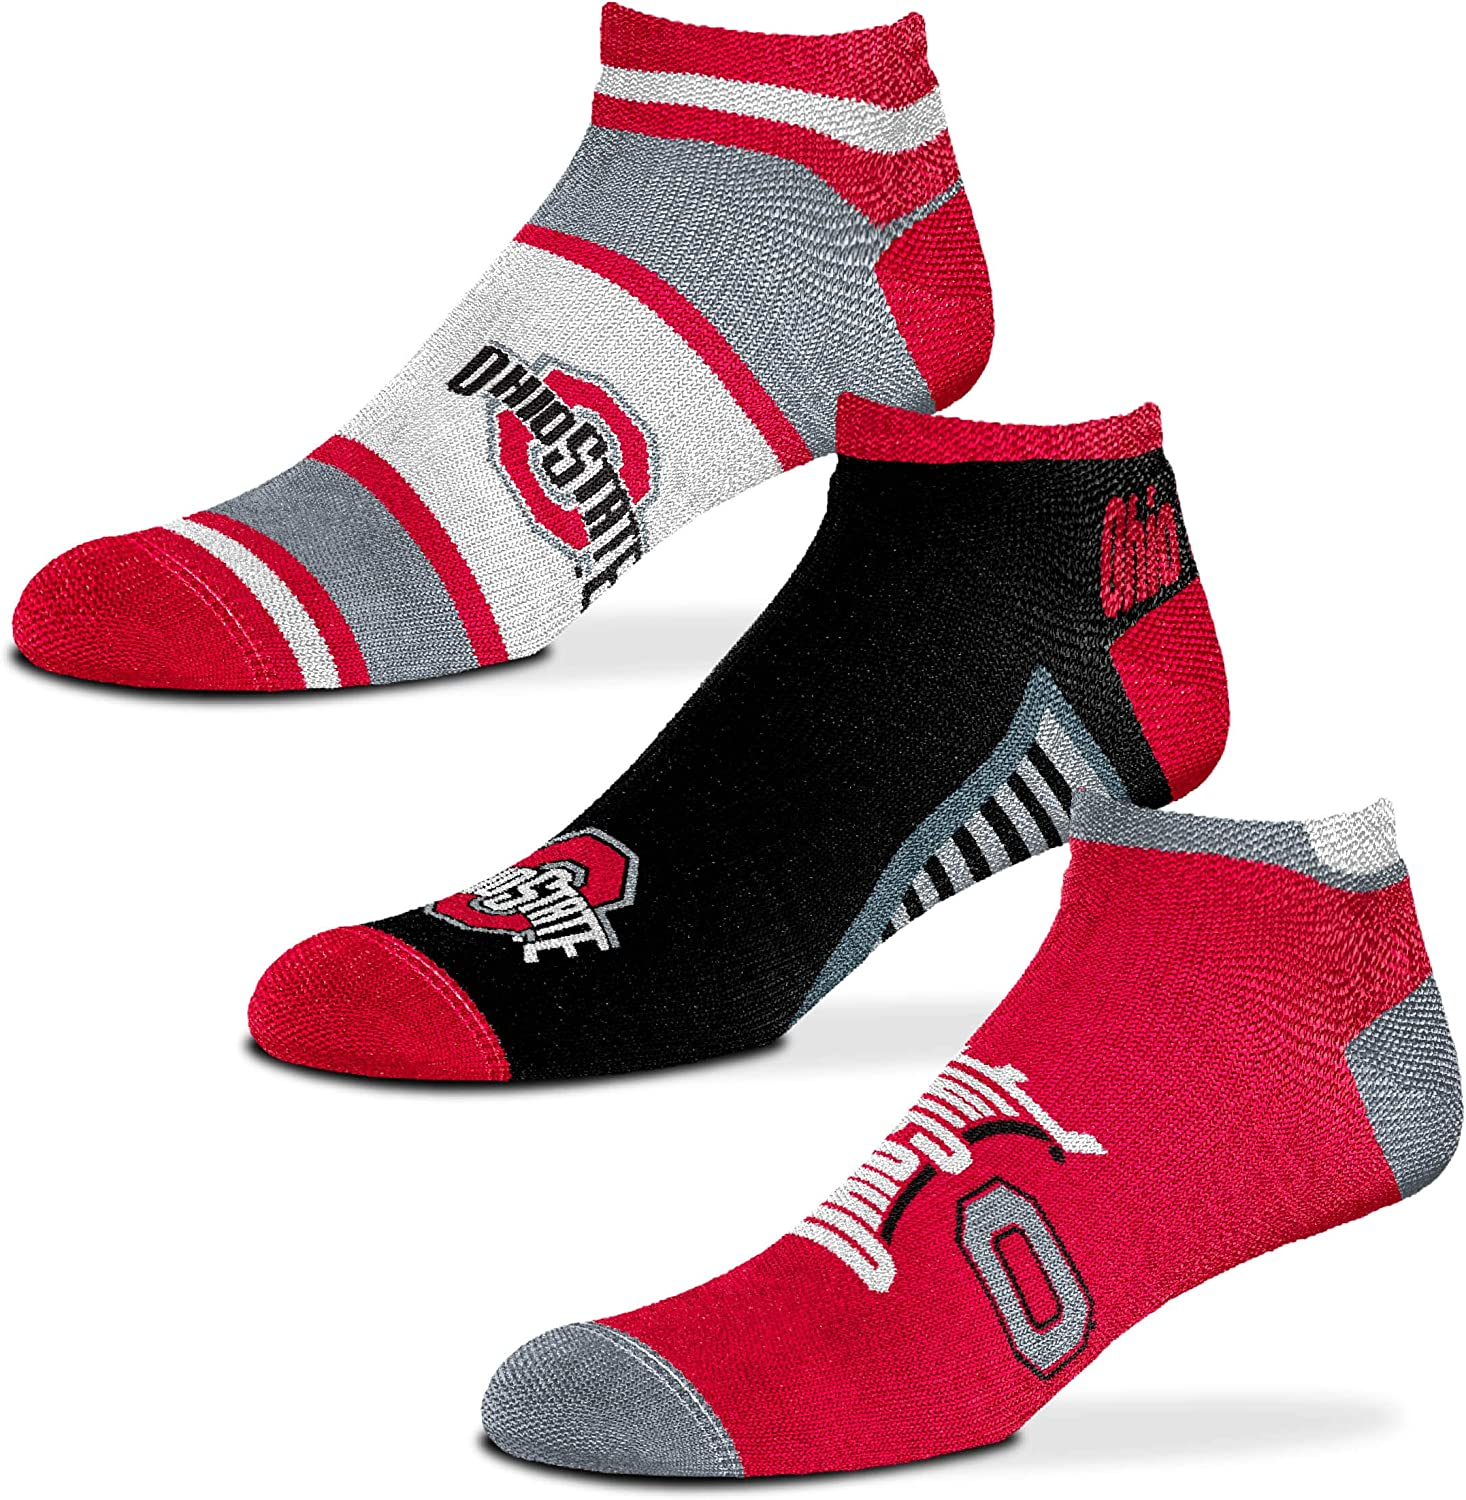 NCAA Show Me The Money! For Bare Feet 3 Pack No Show Ankle Socks